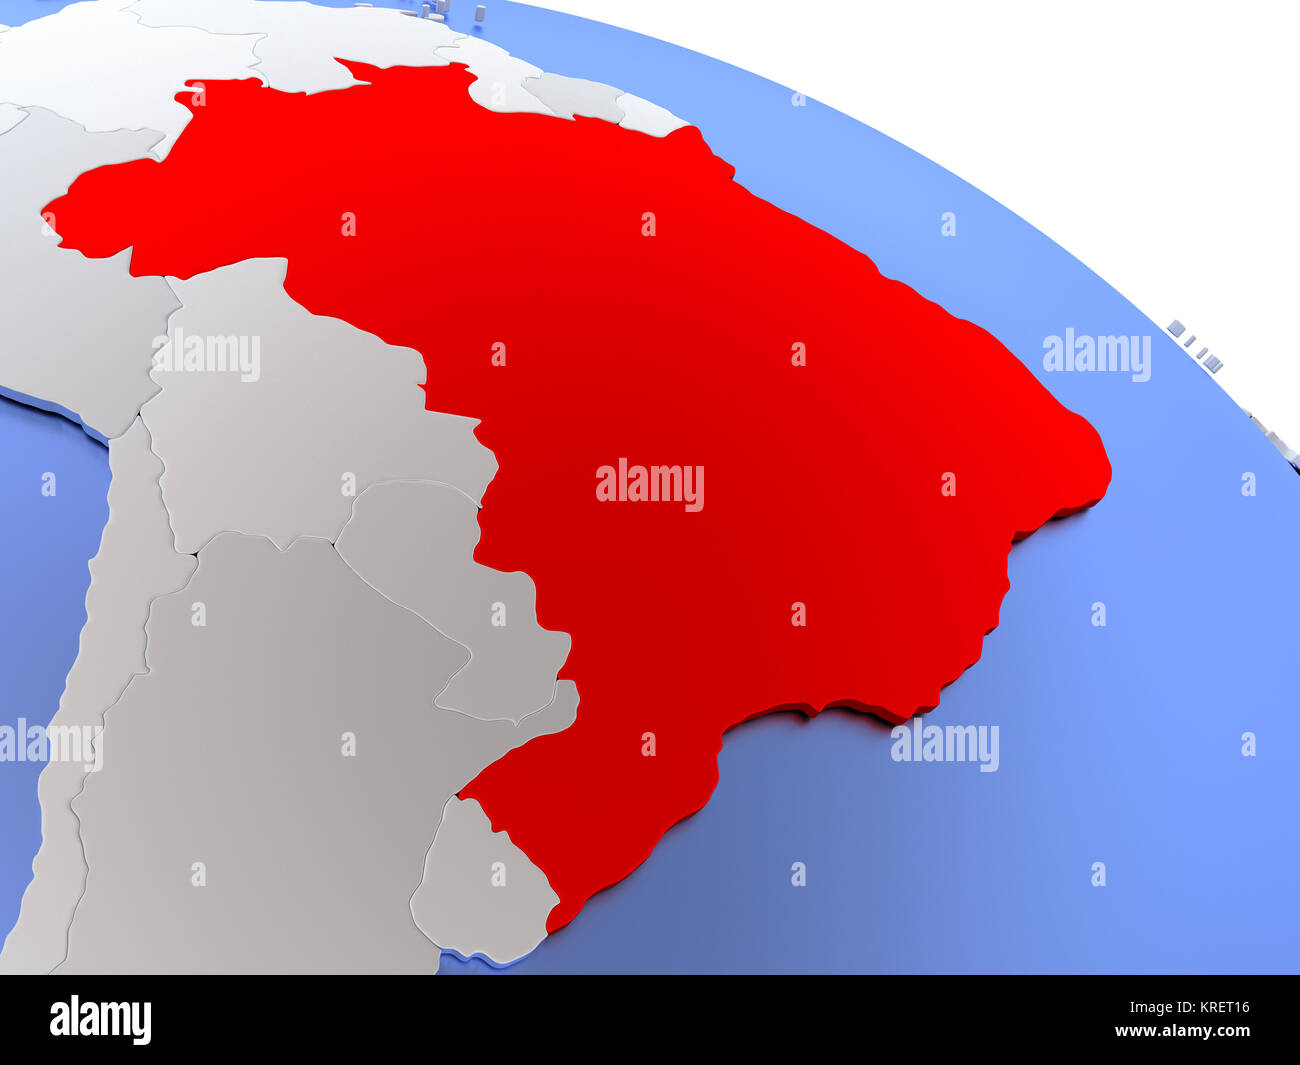 Brazil political map stock photos brazil political map stock brazil on world map stock image gumiabroncs Choice Image